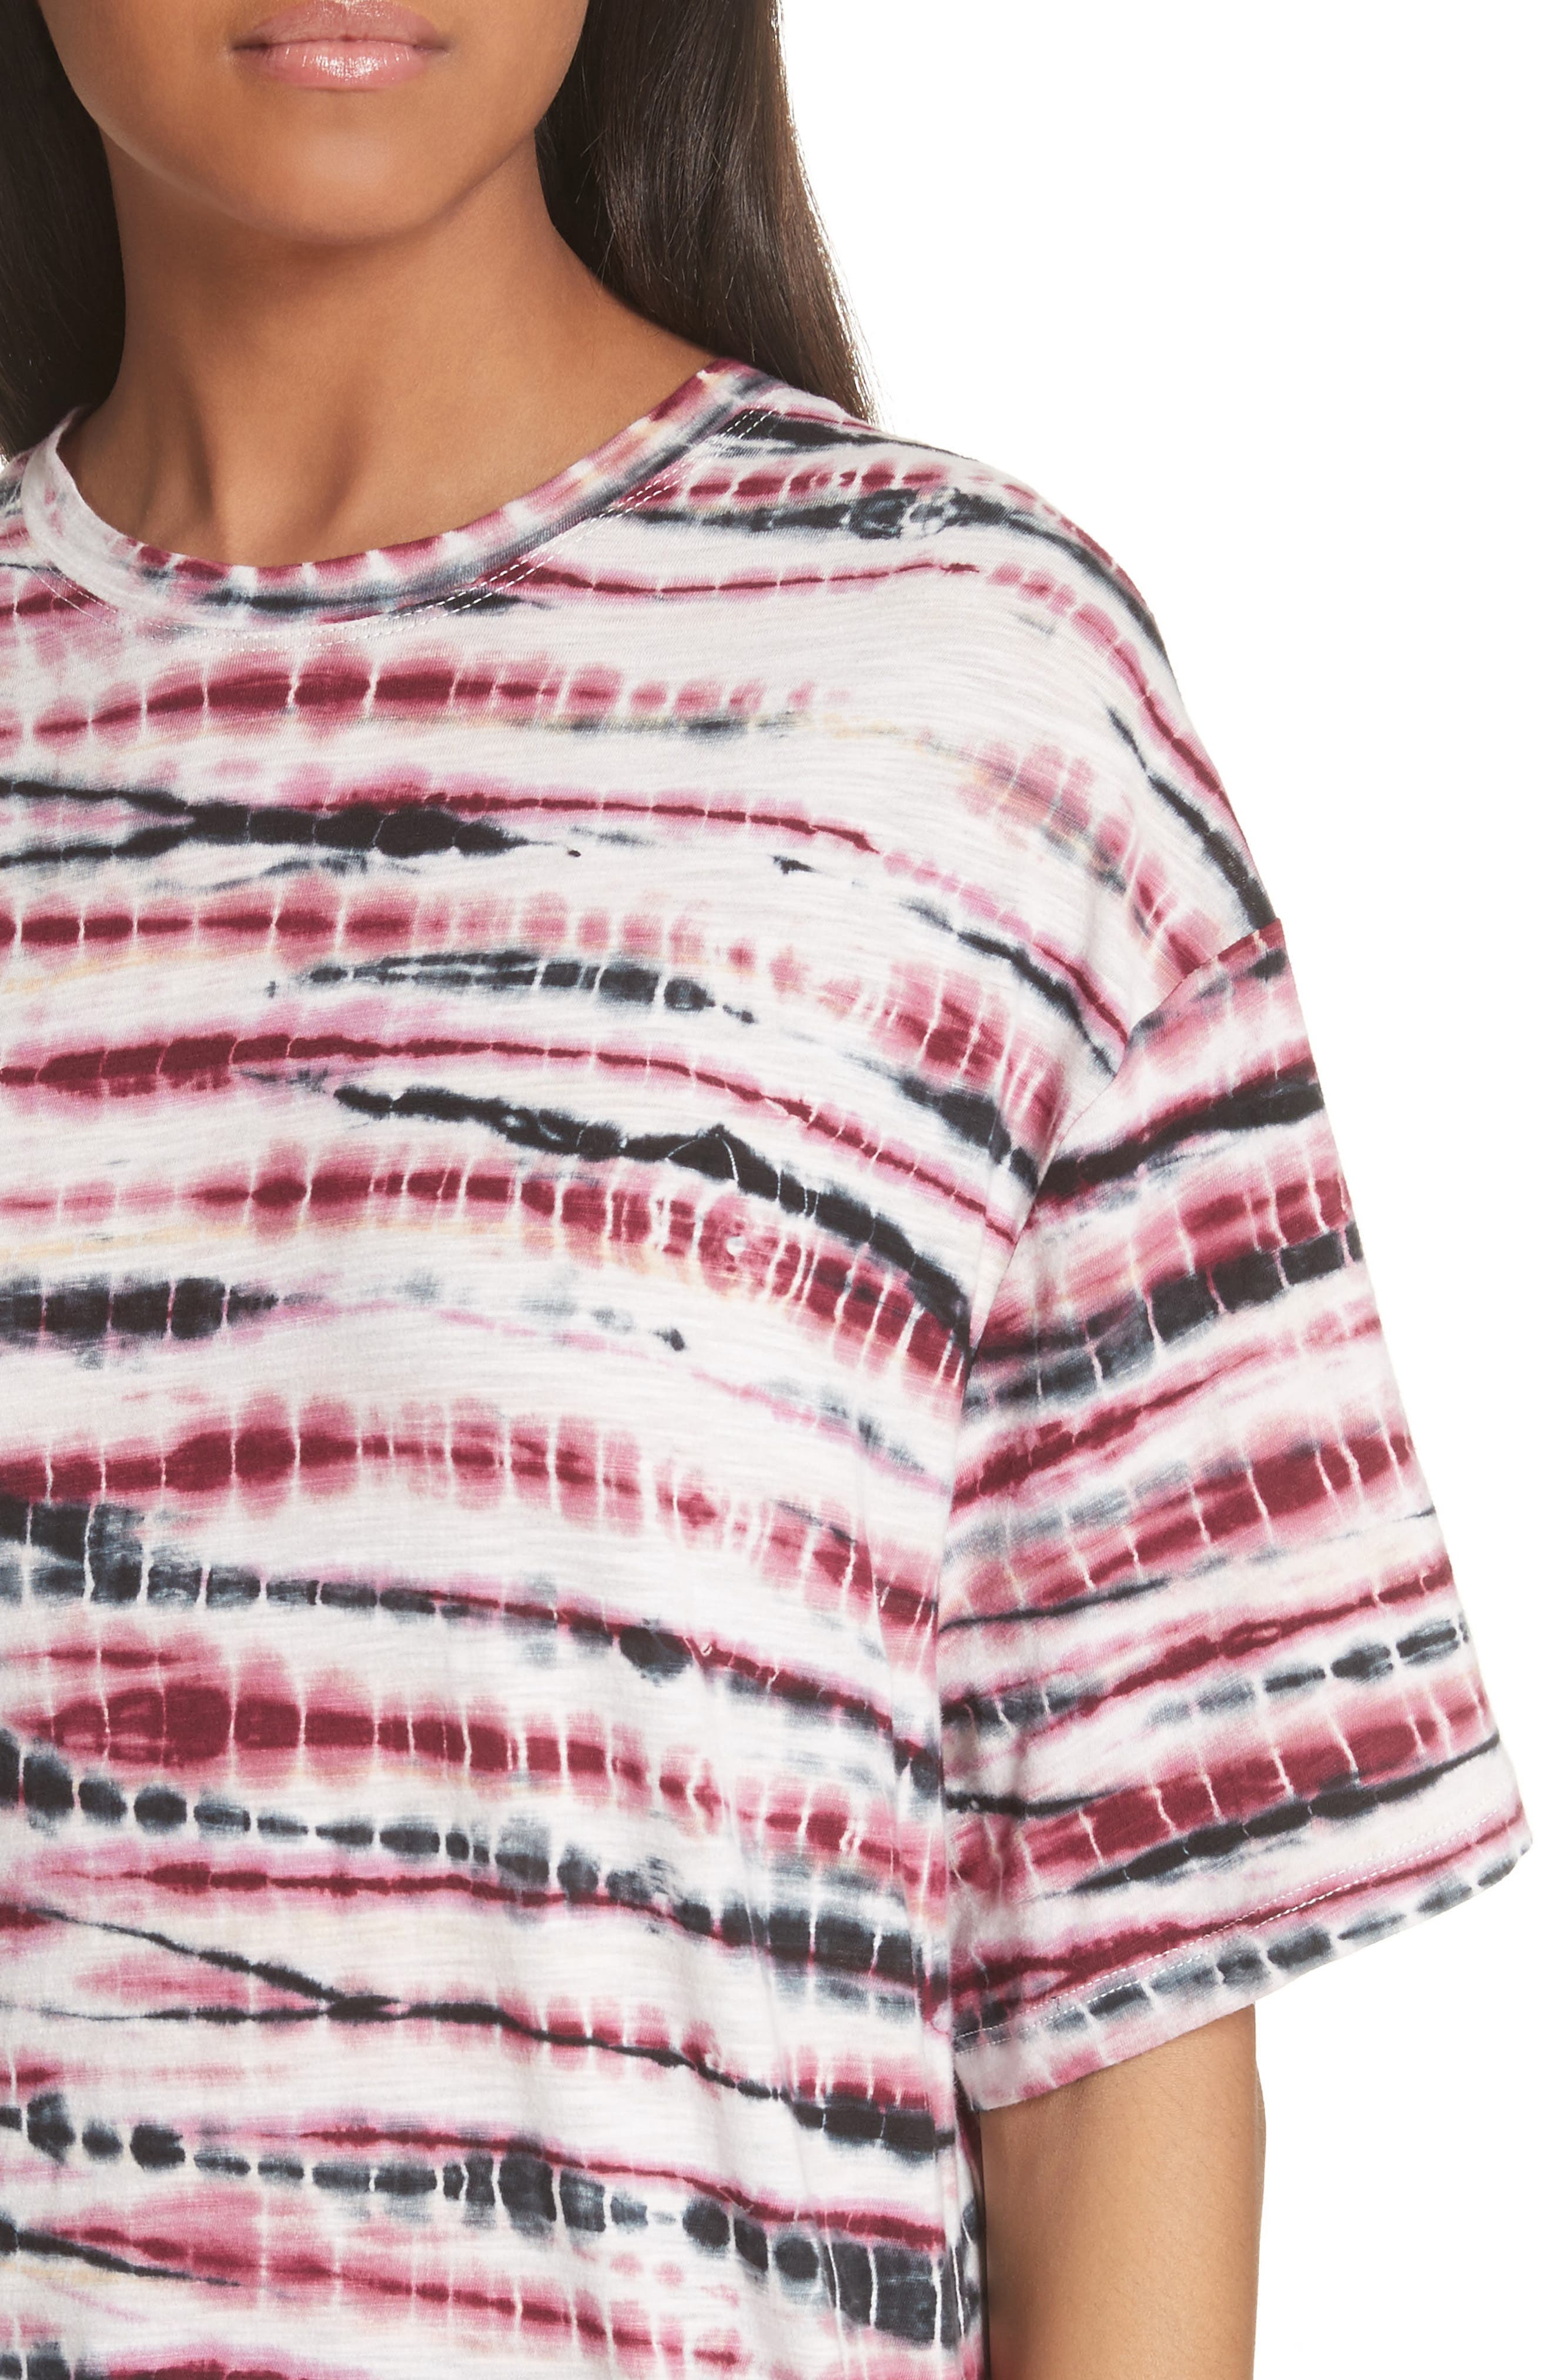 PROENZA SCHOULER,                             Tie Dye Tissue Jersey Tee,                             Alternate thumbnail 4, color,                             930